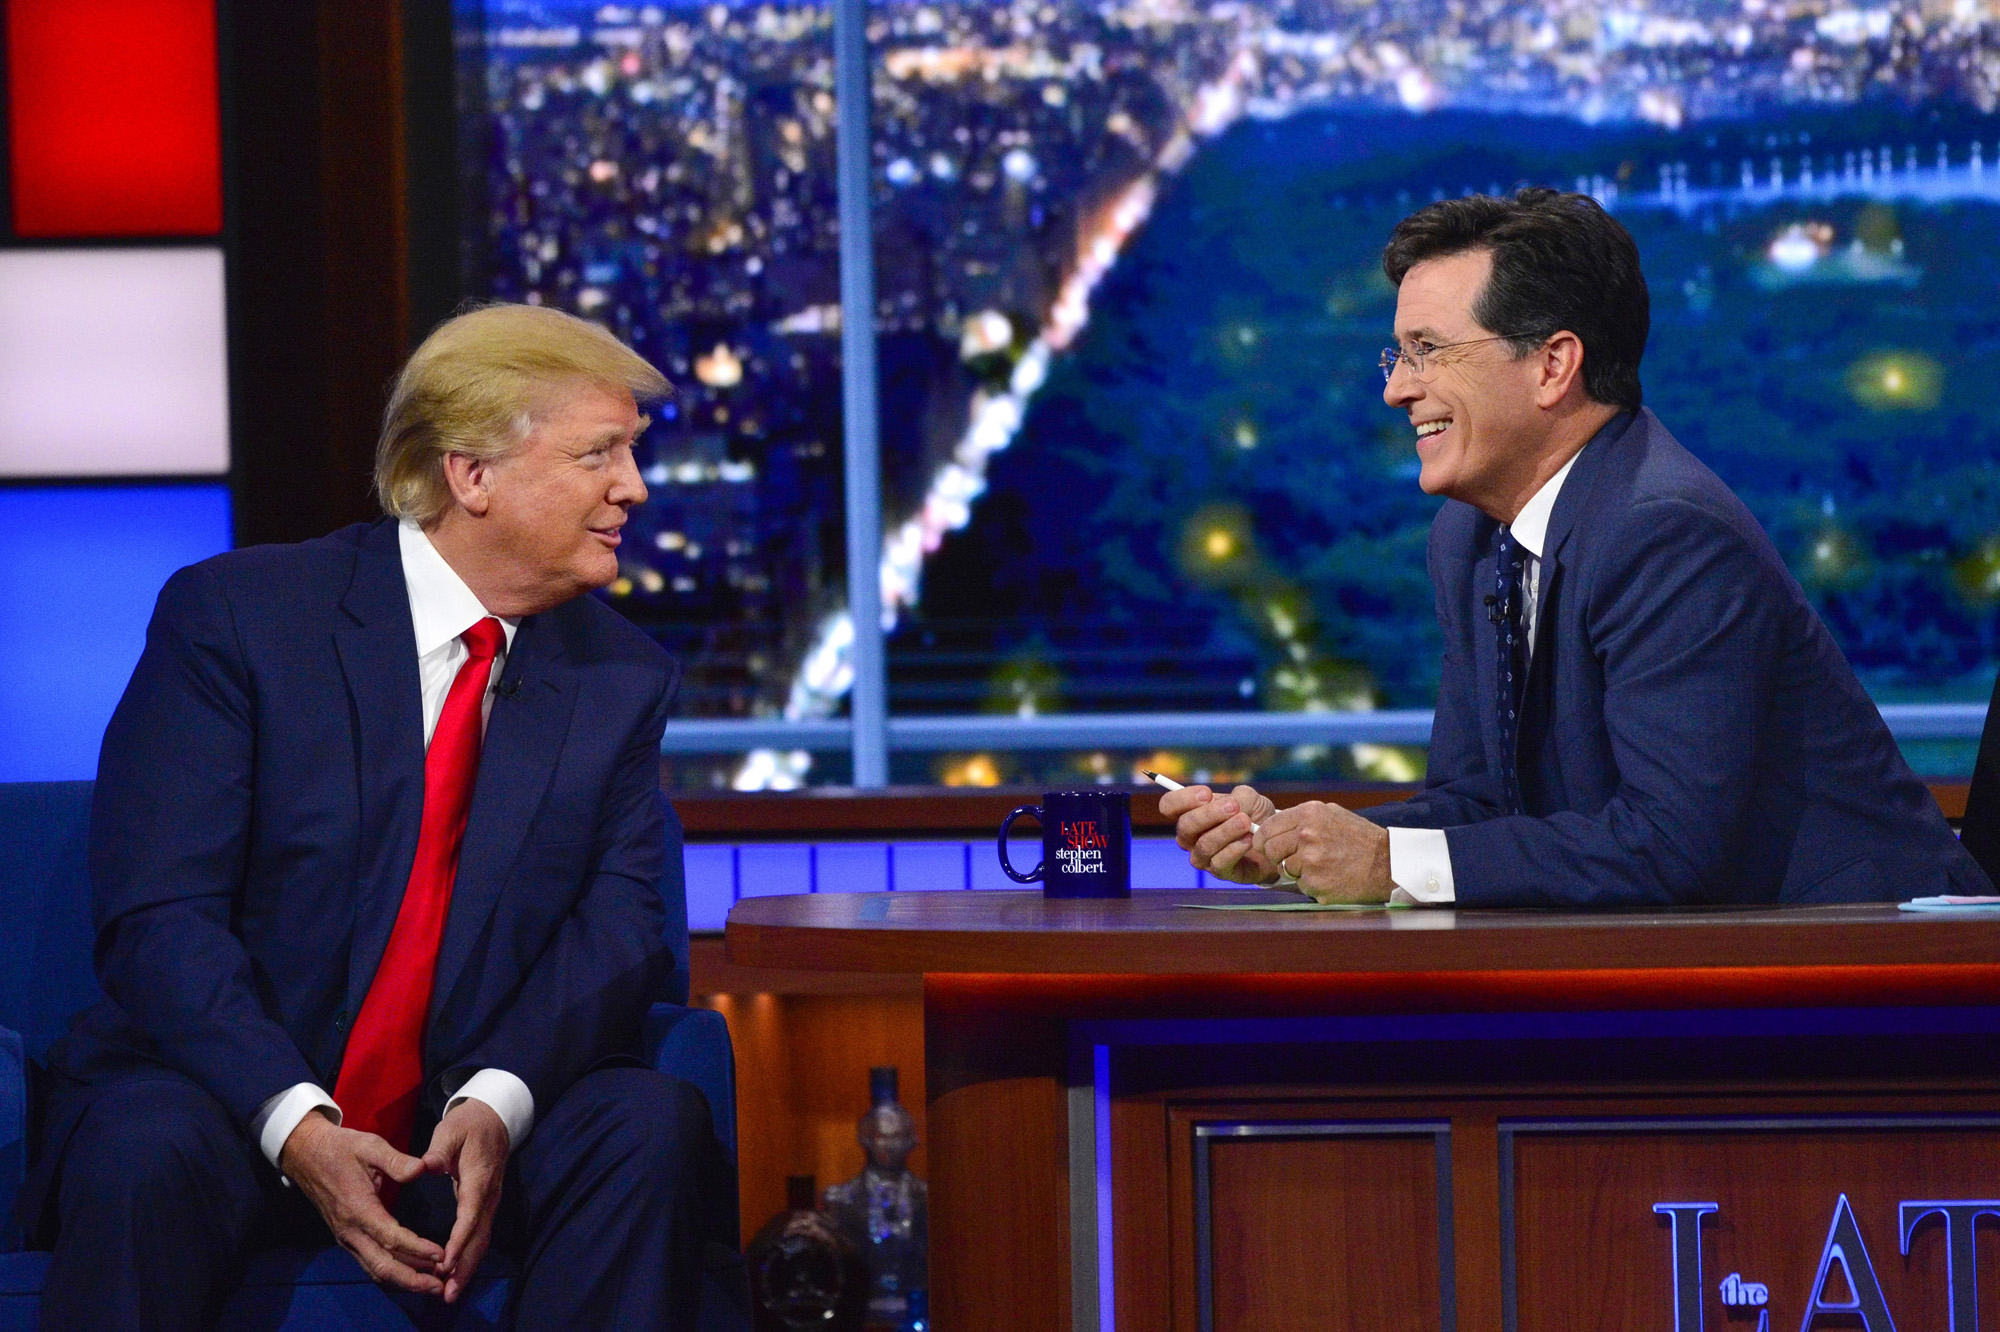 Donald Trump talks about his US Presidential campaign  on The Late Show with Stephen Colbert, Tuesday Sept. 22, 2015 on the CBS Television Network.